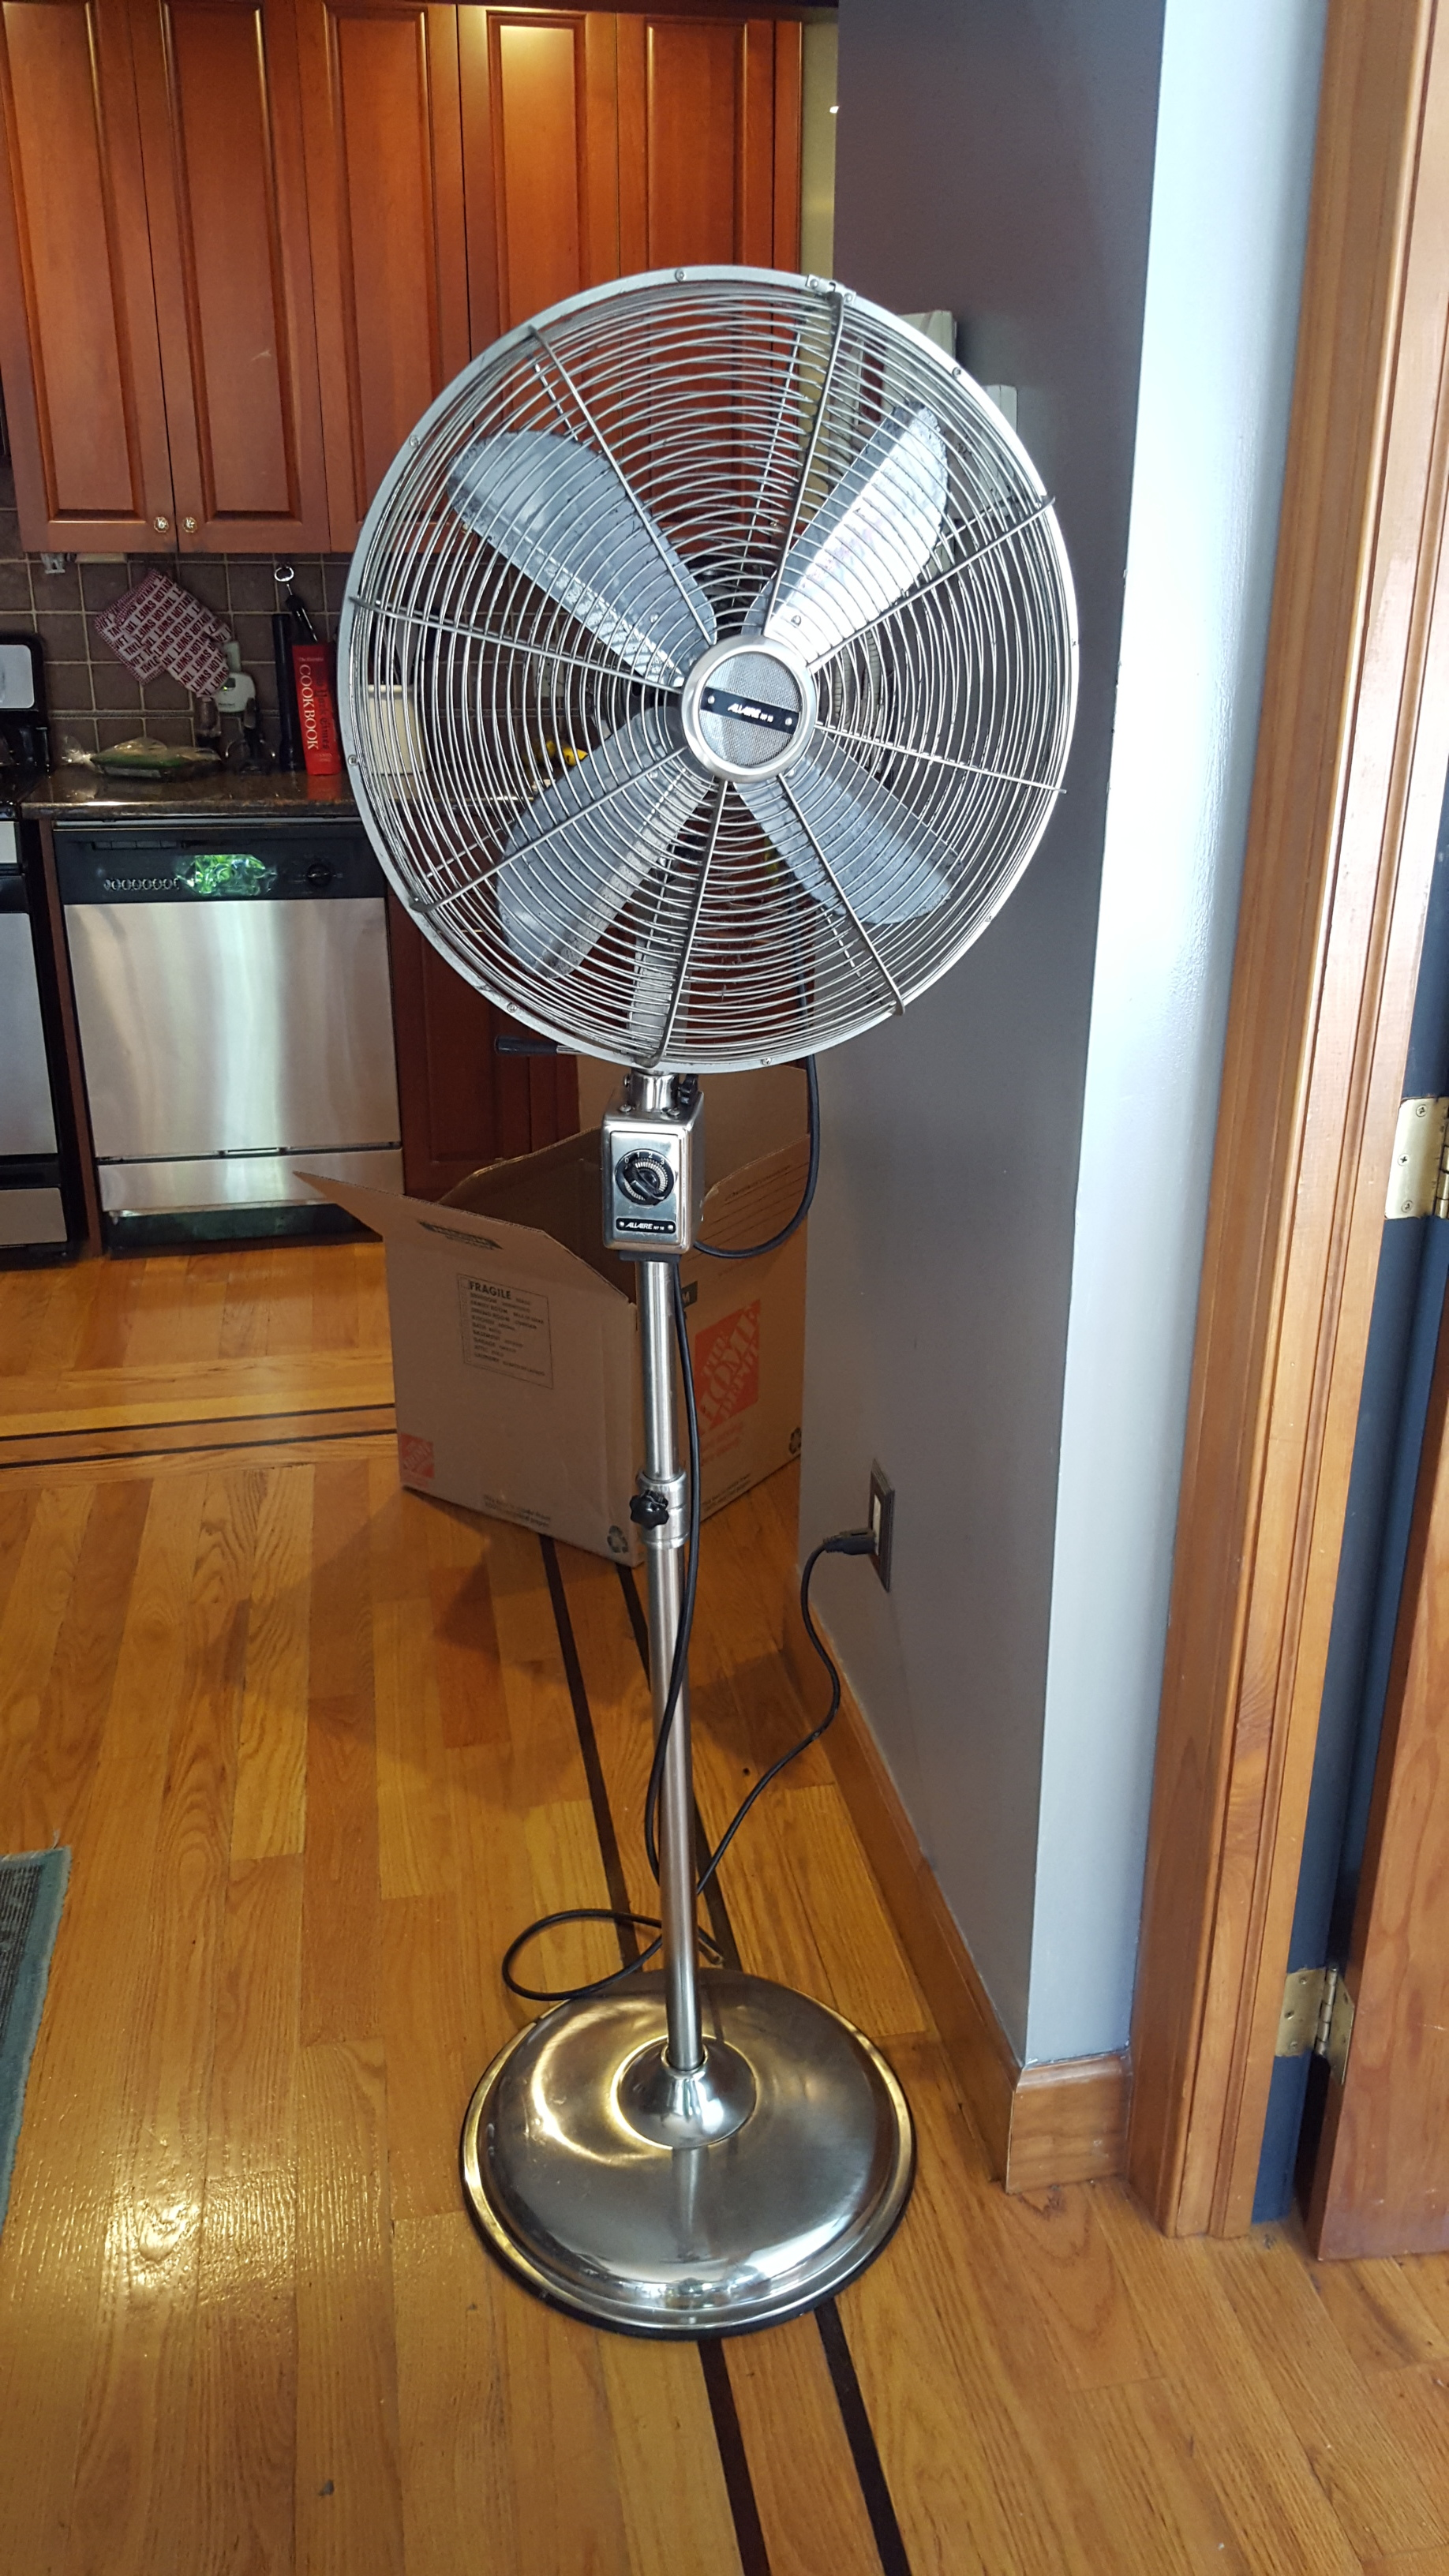 Restoration Hardware Upright Fan - $50